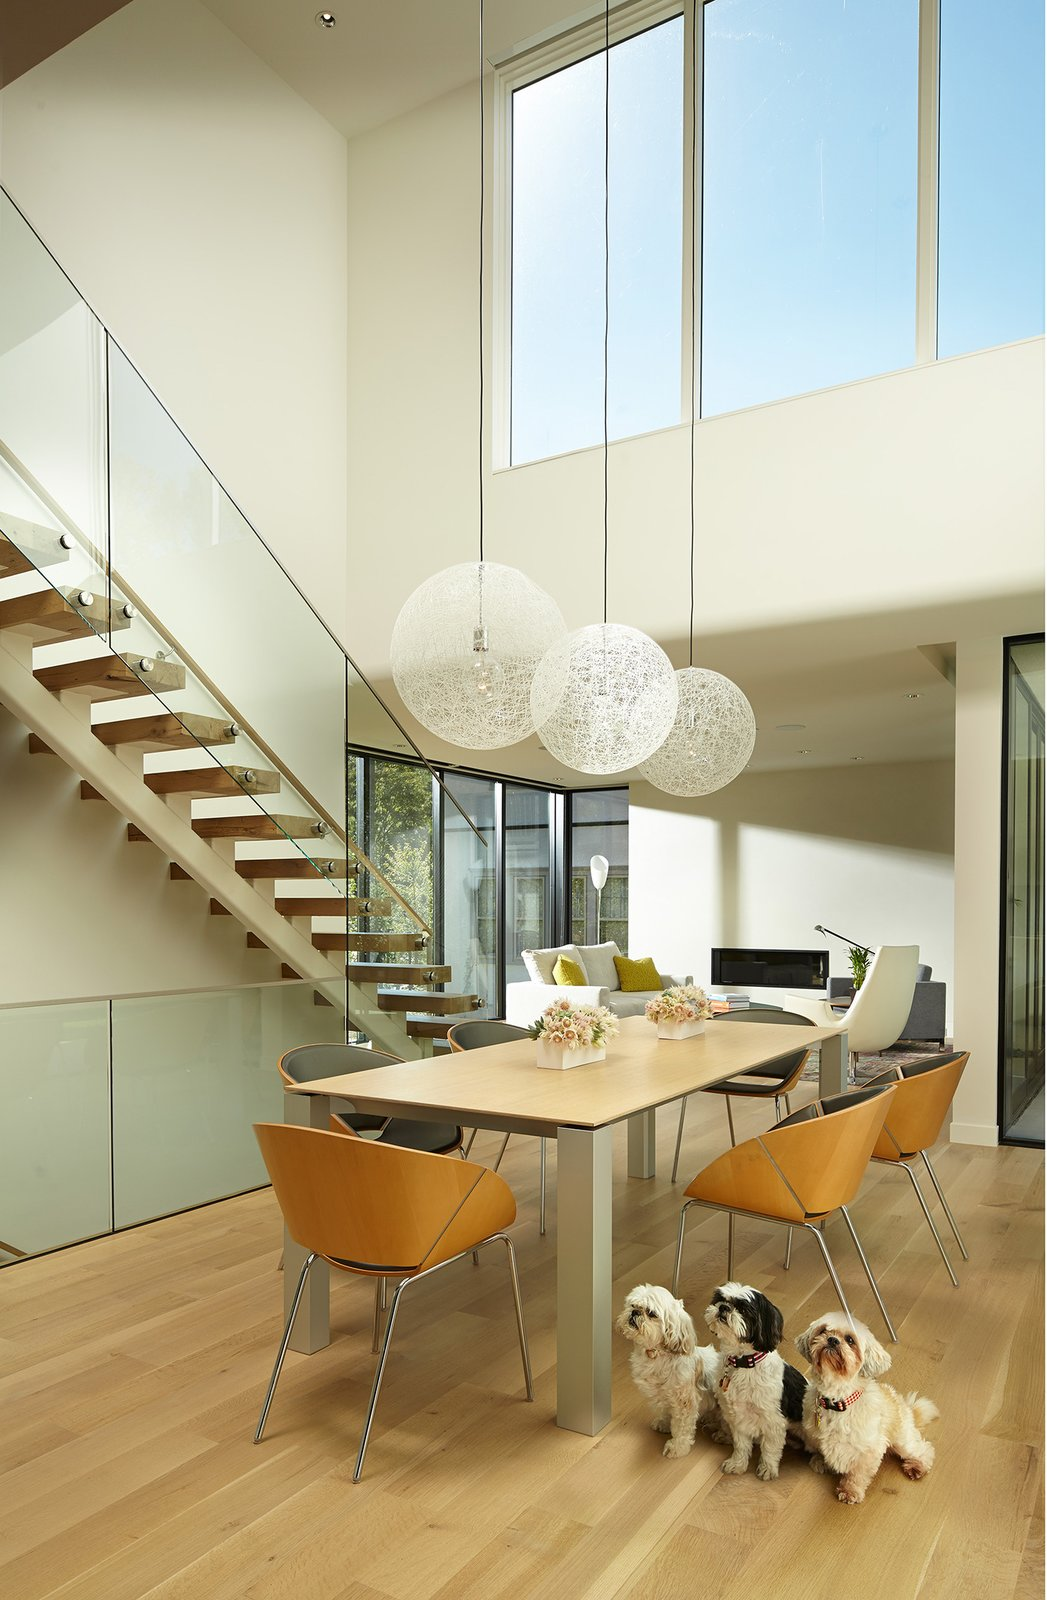 Wood Tread, Glass Railing, Dining Room, Chair, Table, Light Hardwood Floor, Accent Lighting, and Pendant Lighting  Sheridan Residence by Peterssen/Keller Architecture